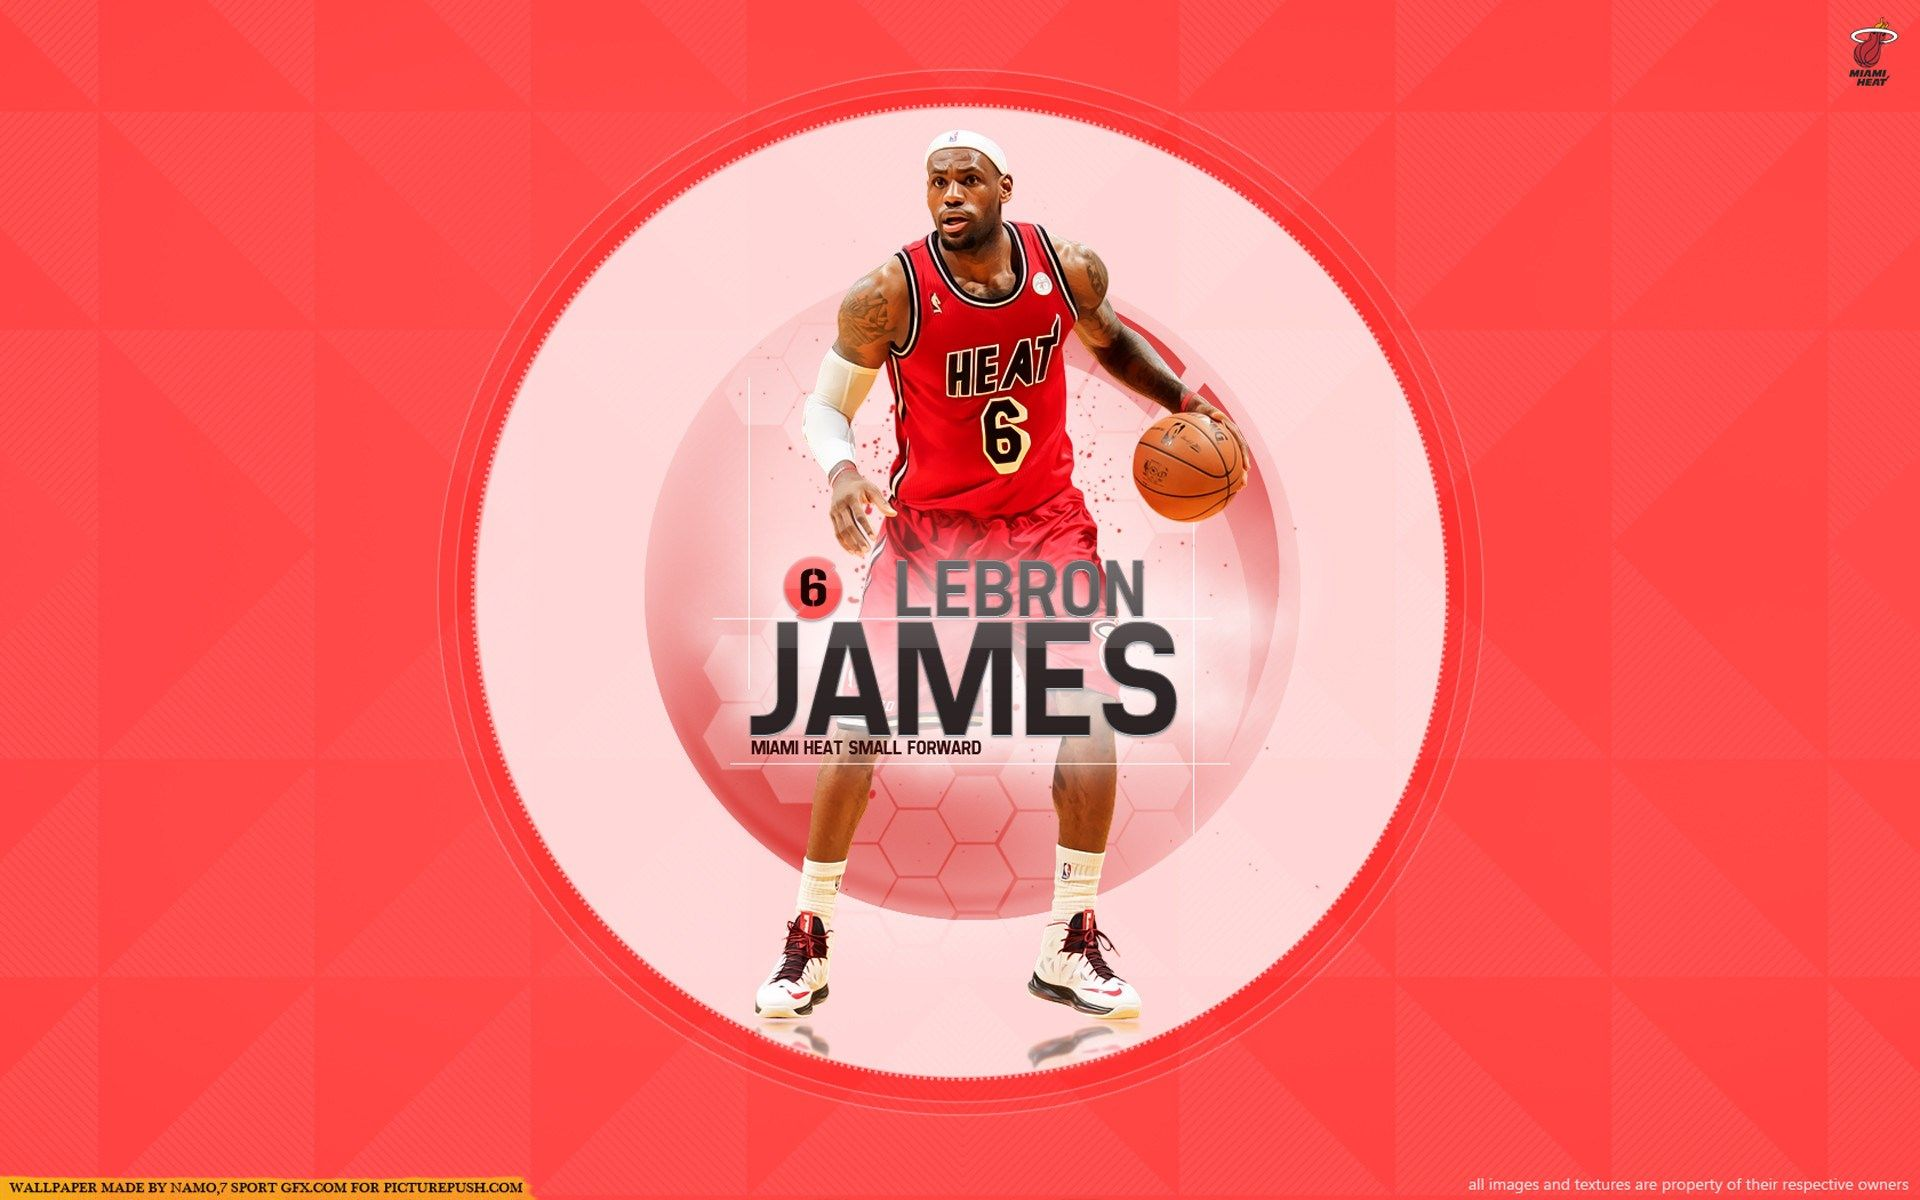 lebron james miami heat wallpapers download free